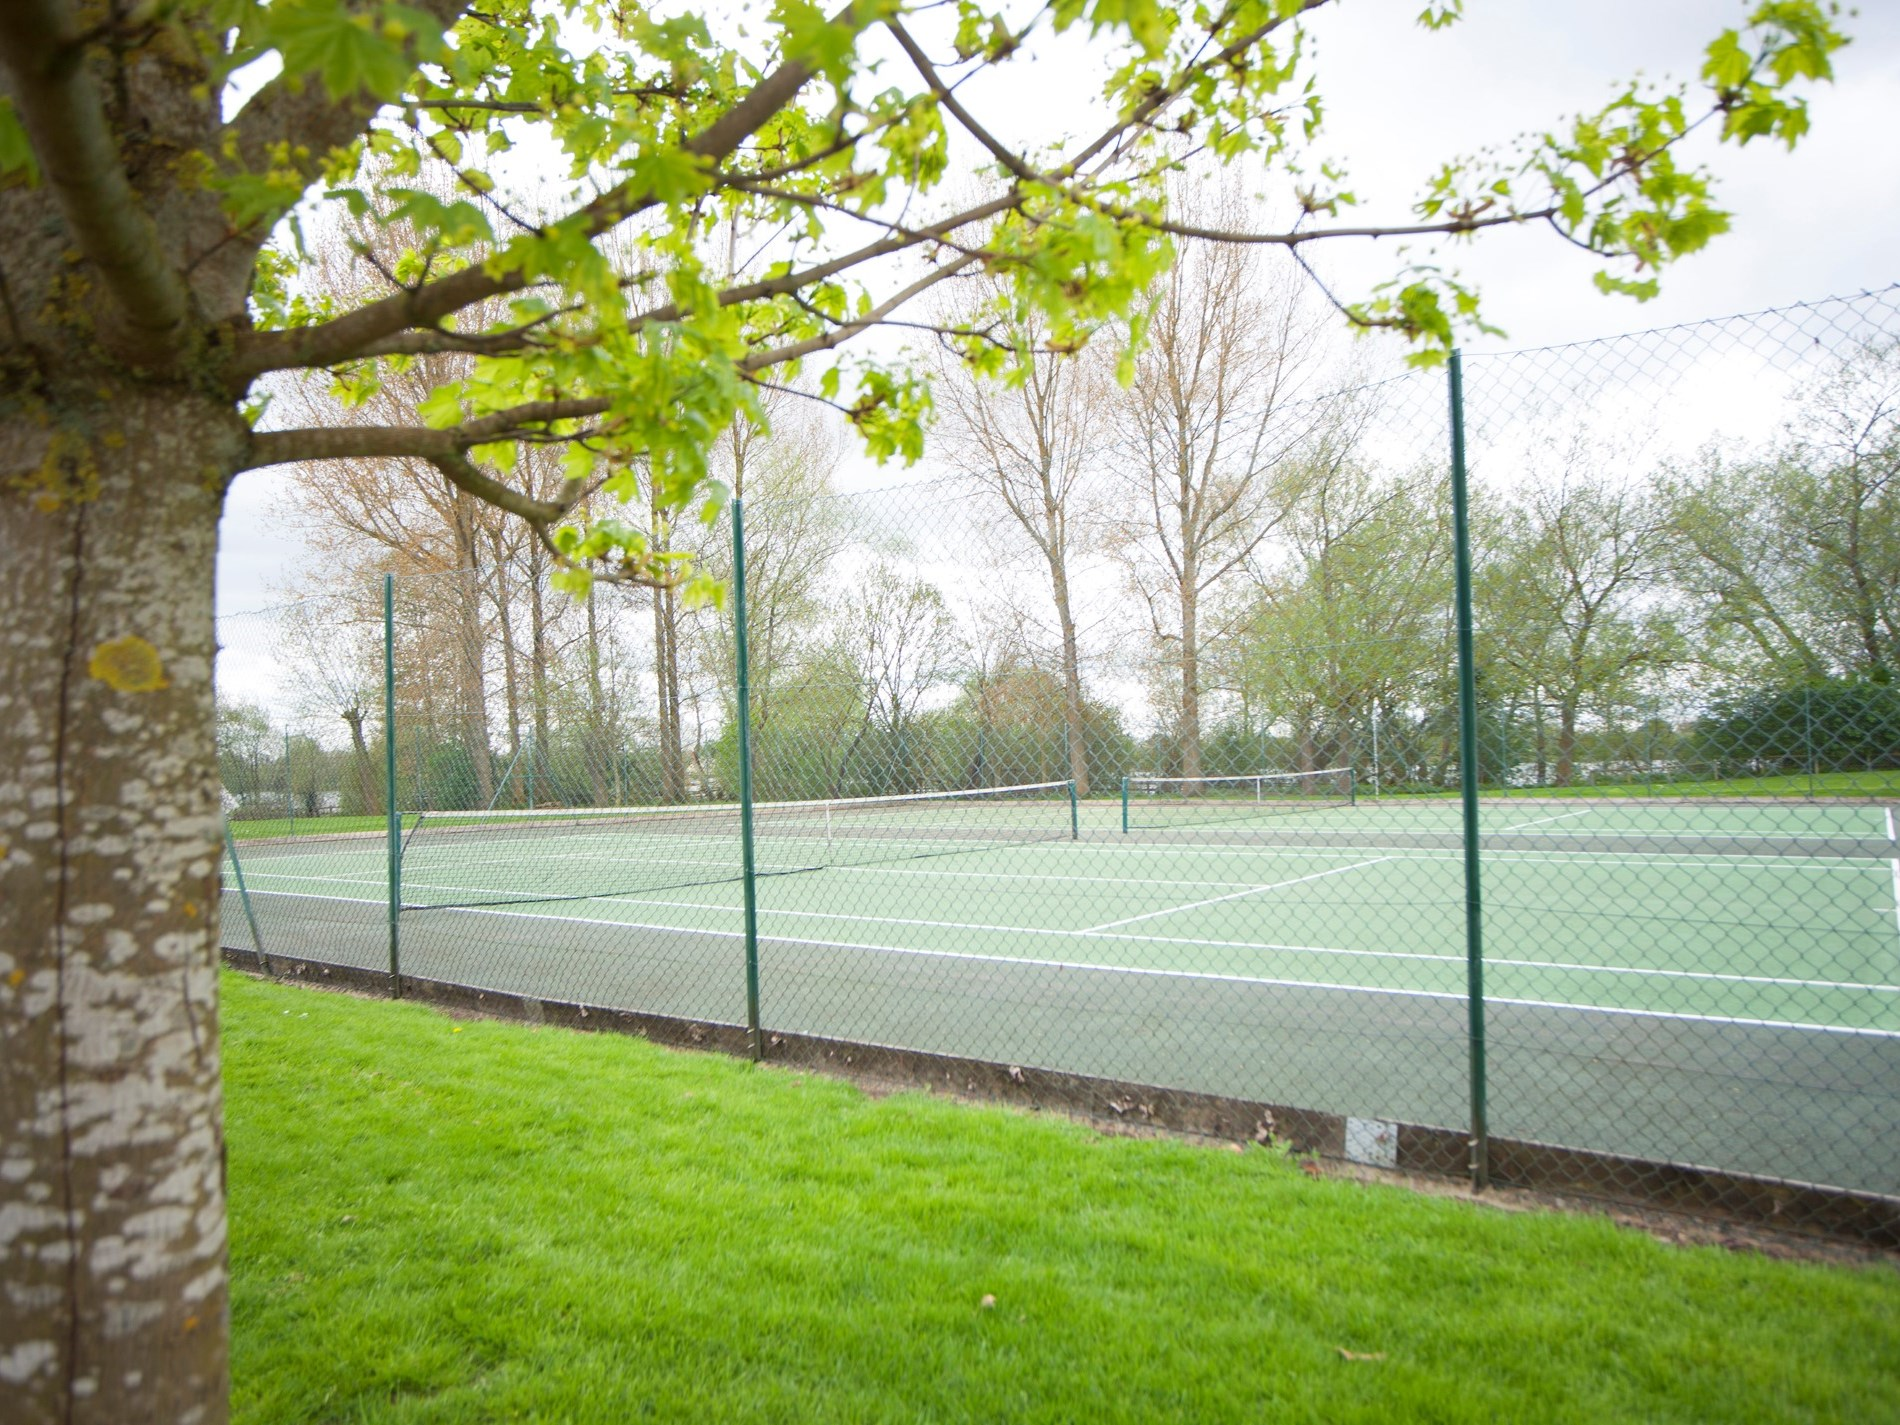 Access to tennis courts